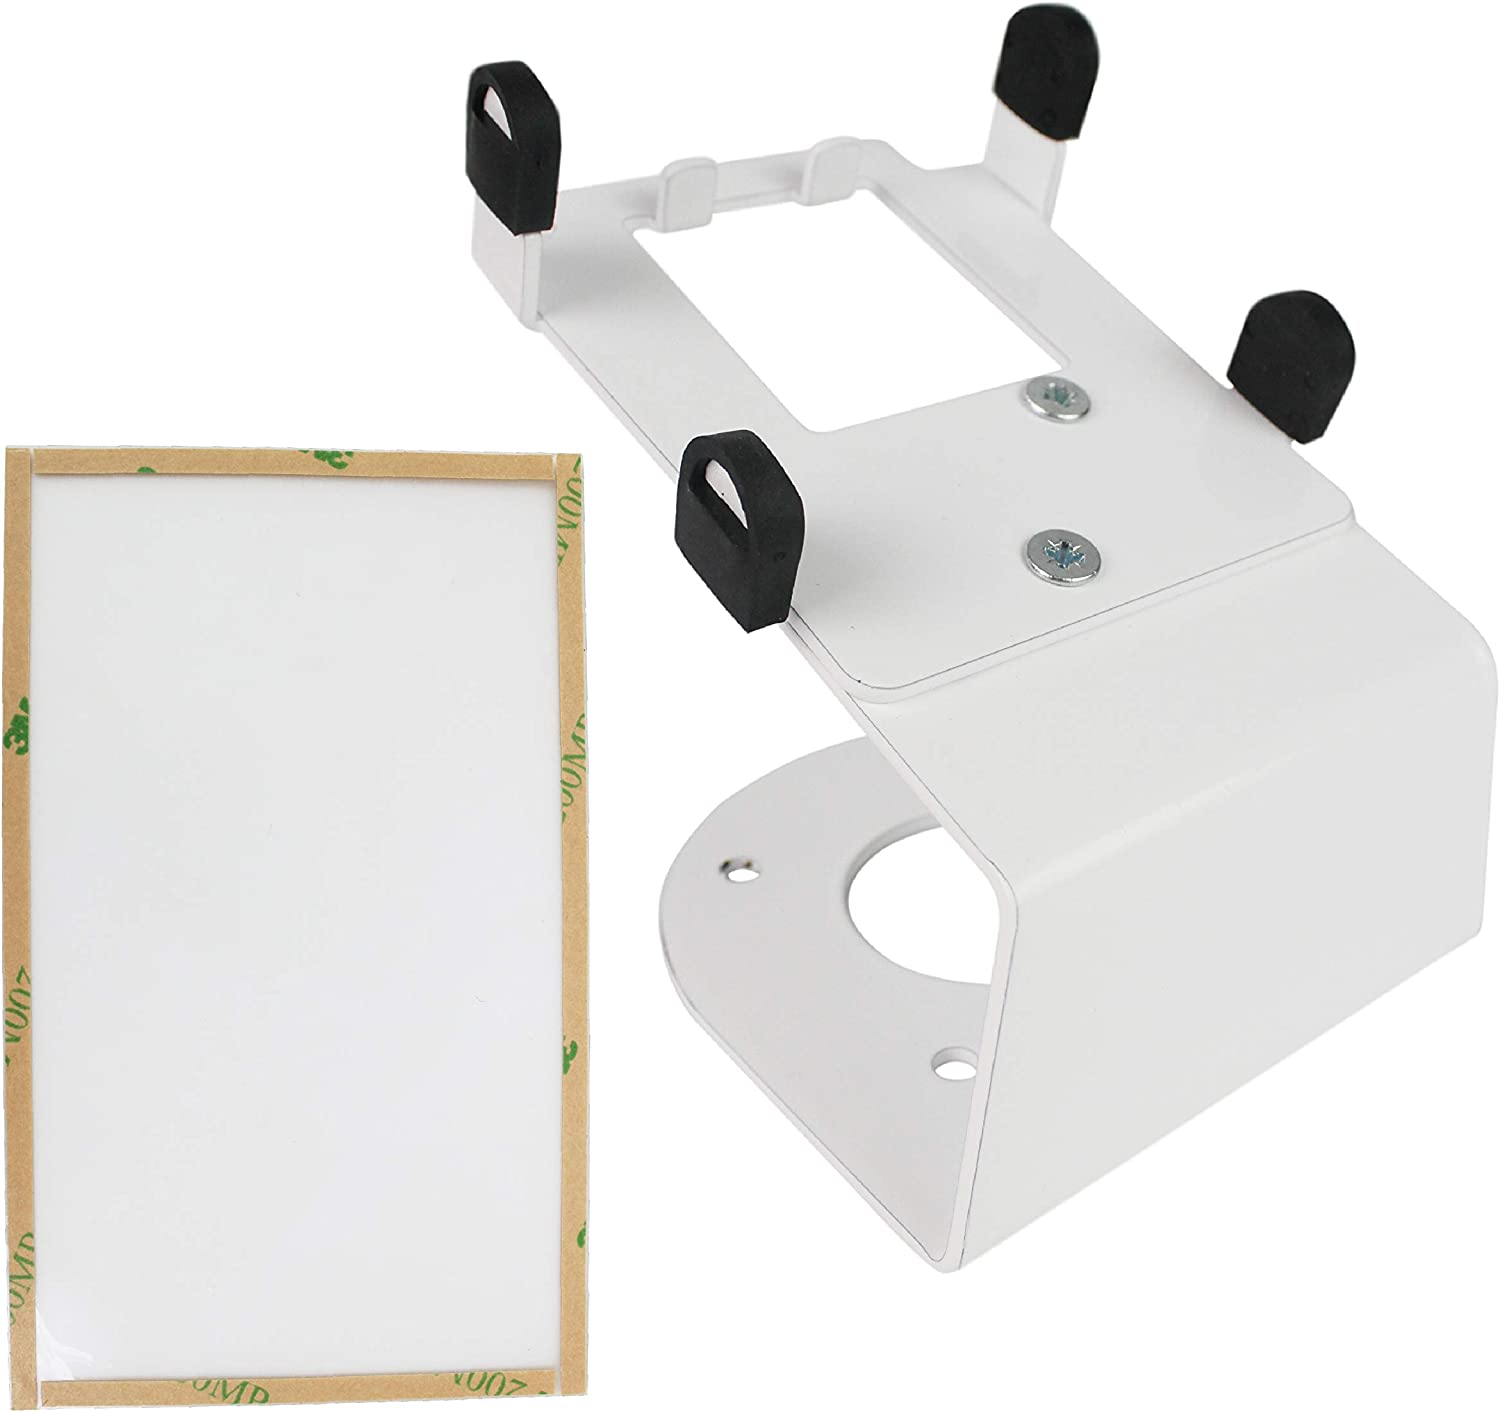 DCCStands Fixed Clover Flex Terminal Stand with Screen Protector - Screw-in and Adhesive